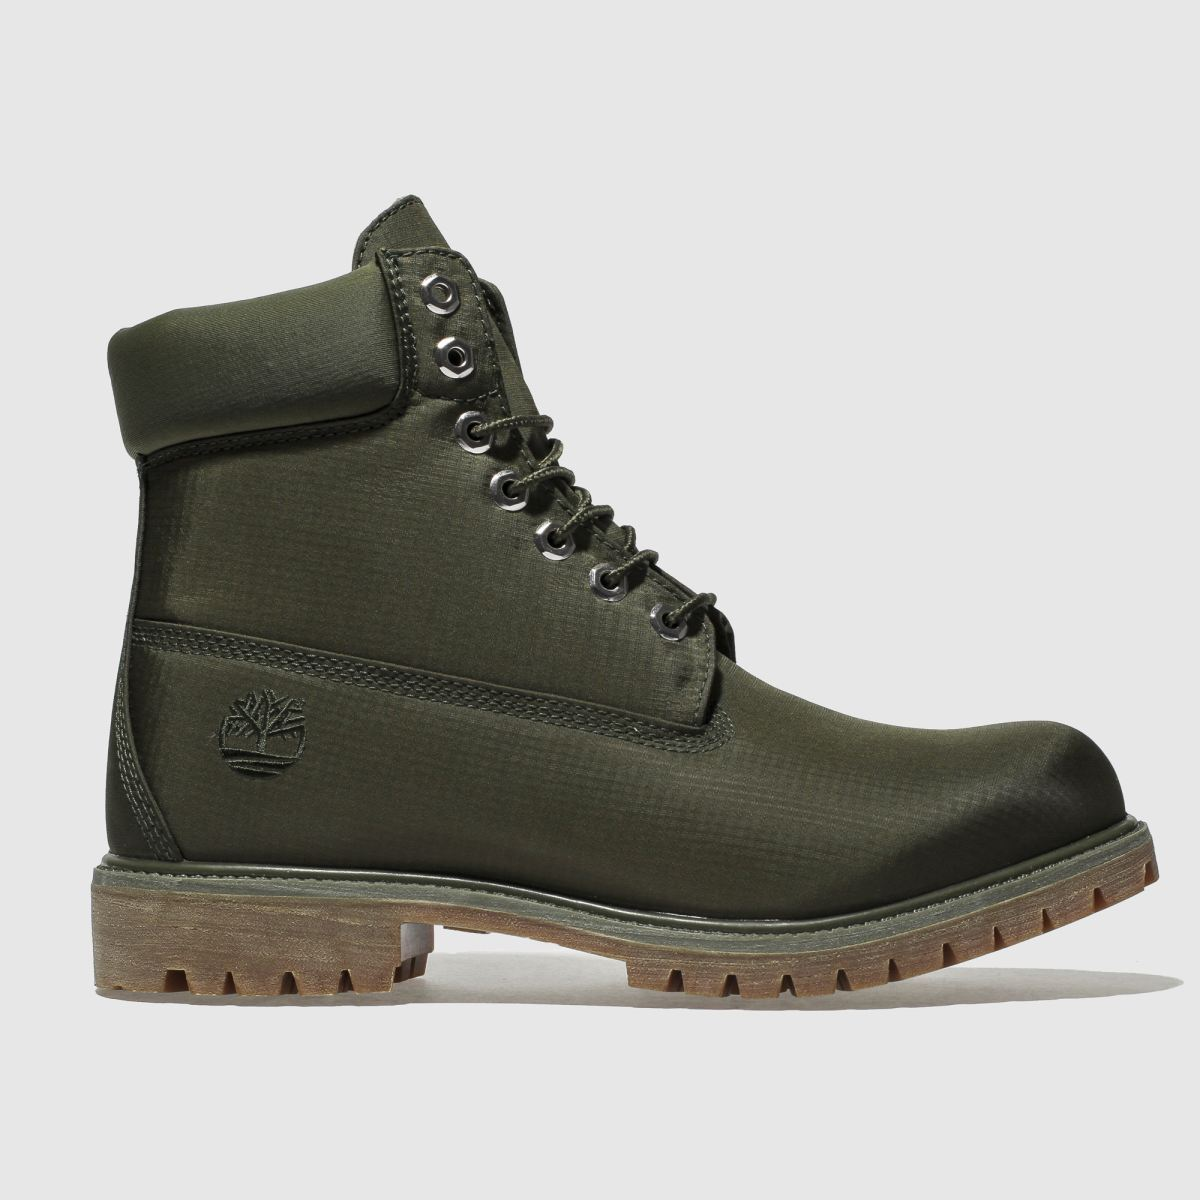 Timberland Green 6 Inch Premium Fabric Boots